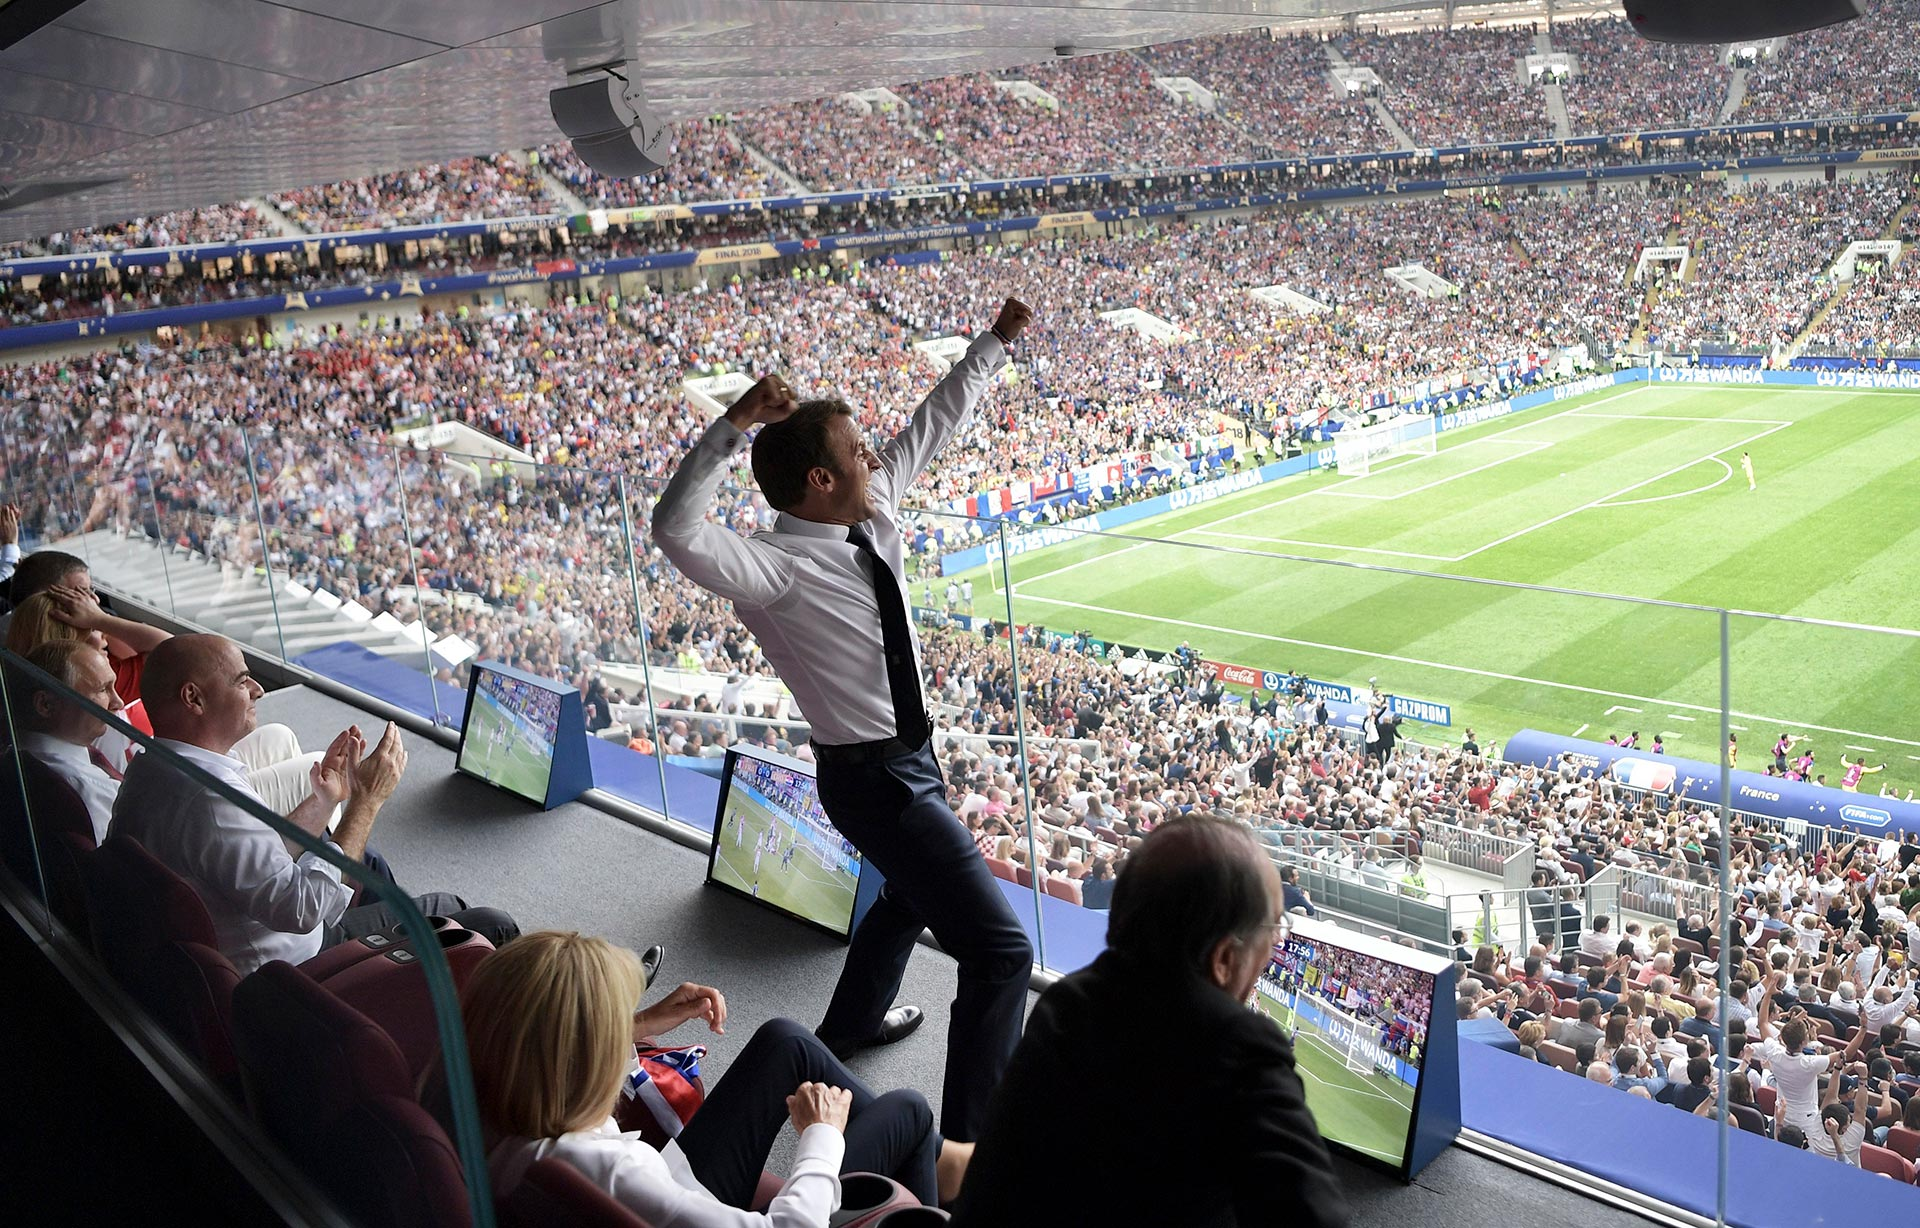 French President Emmanuel Macron cheers on France during the World Cup final